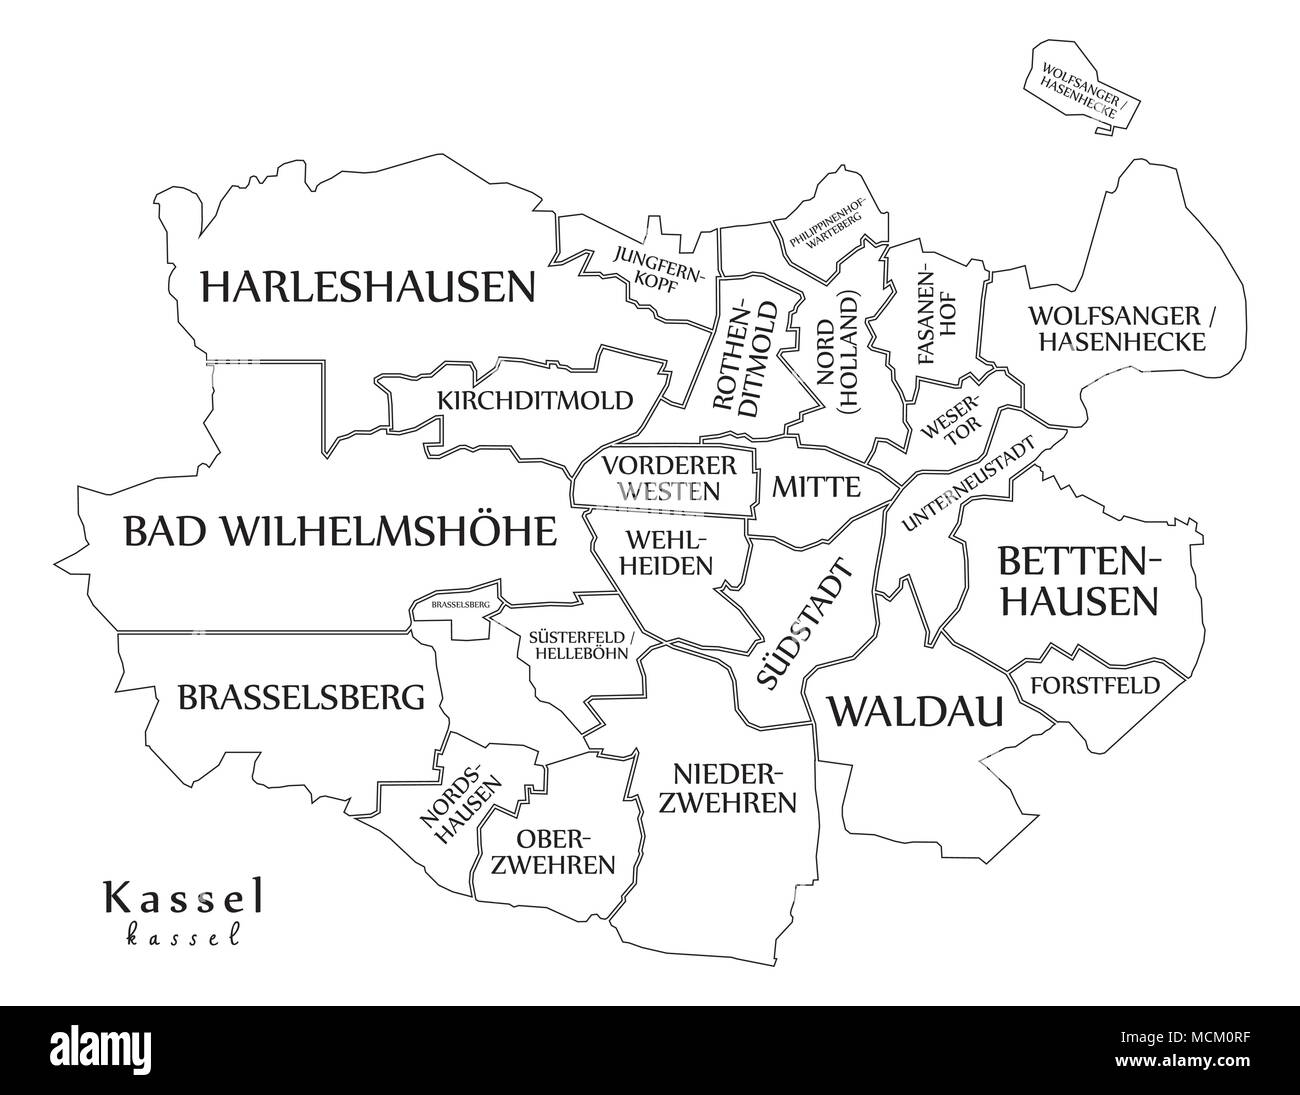 Modern City Map Kassel city of Germany with boroughs and titles DE